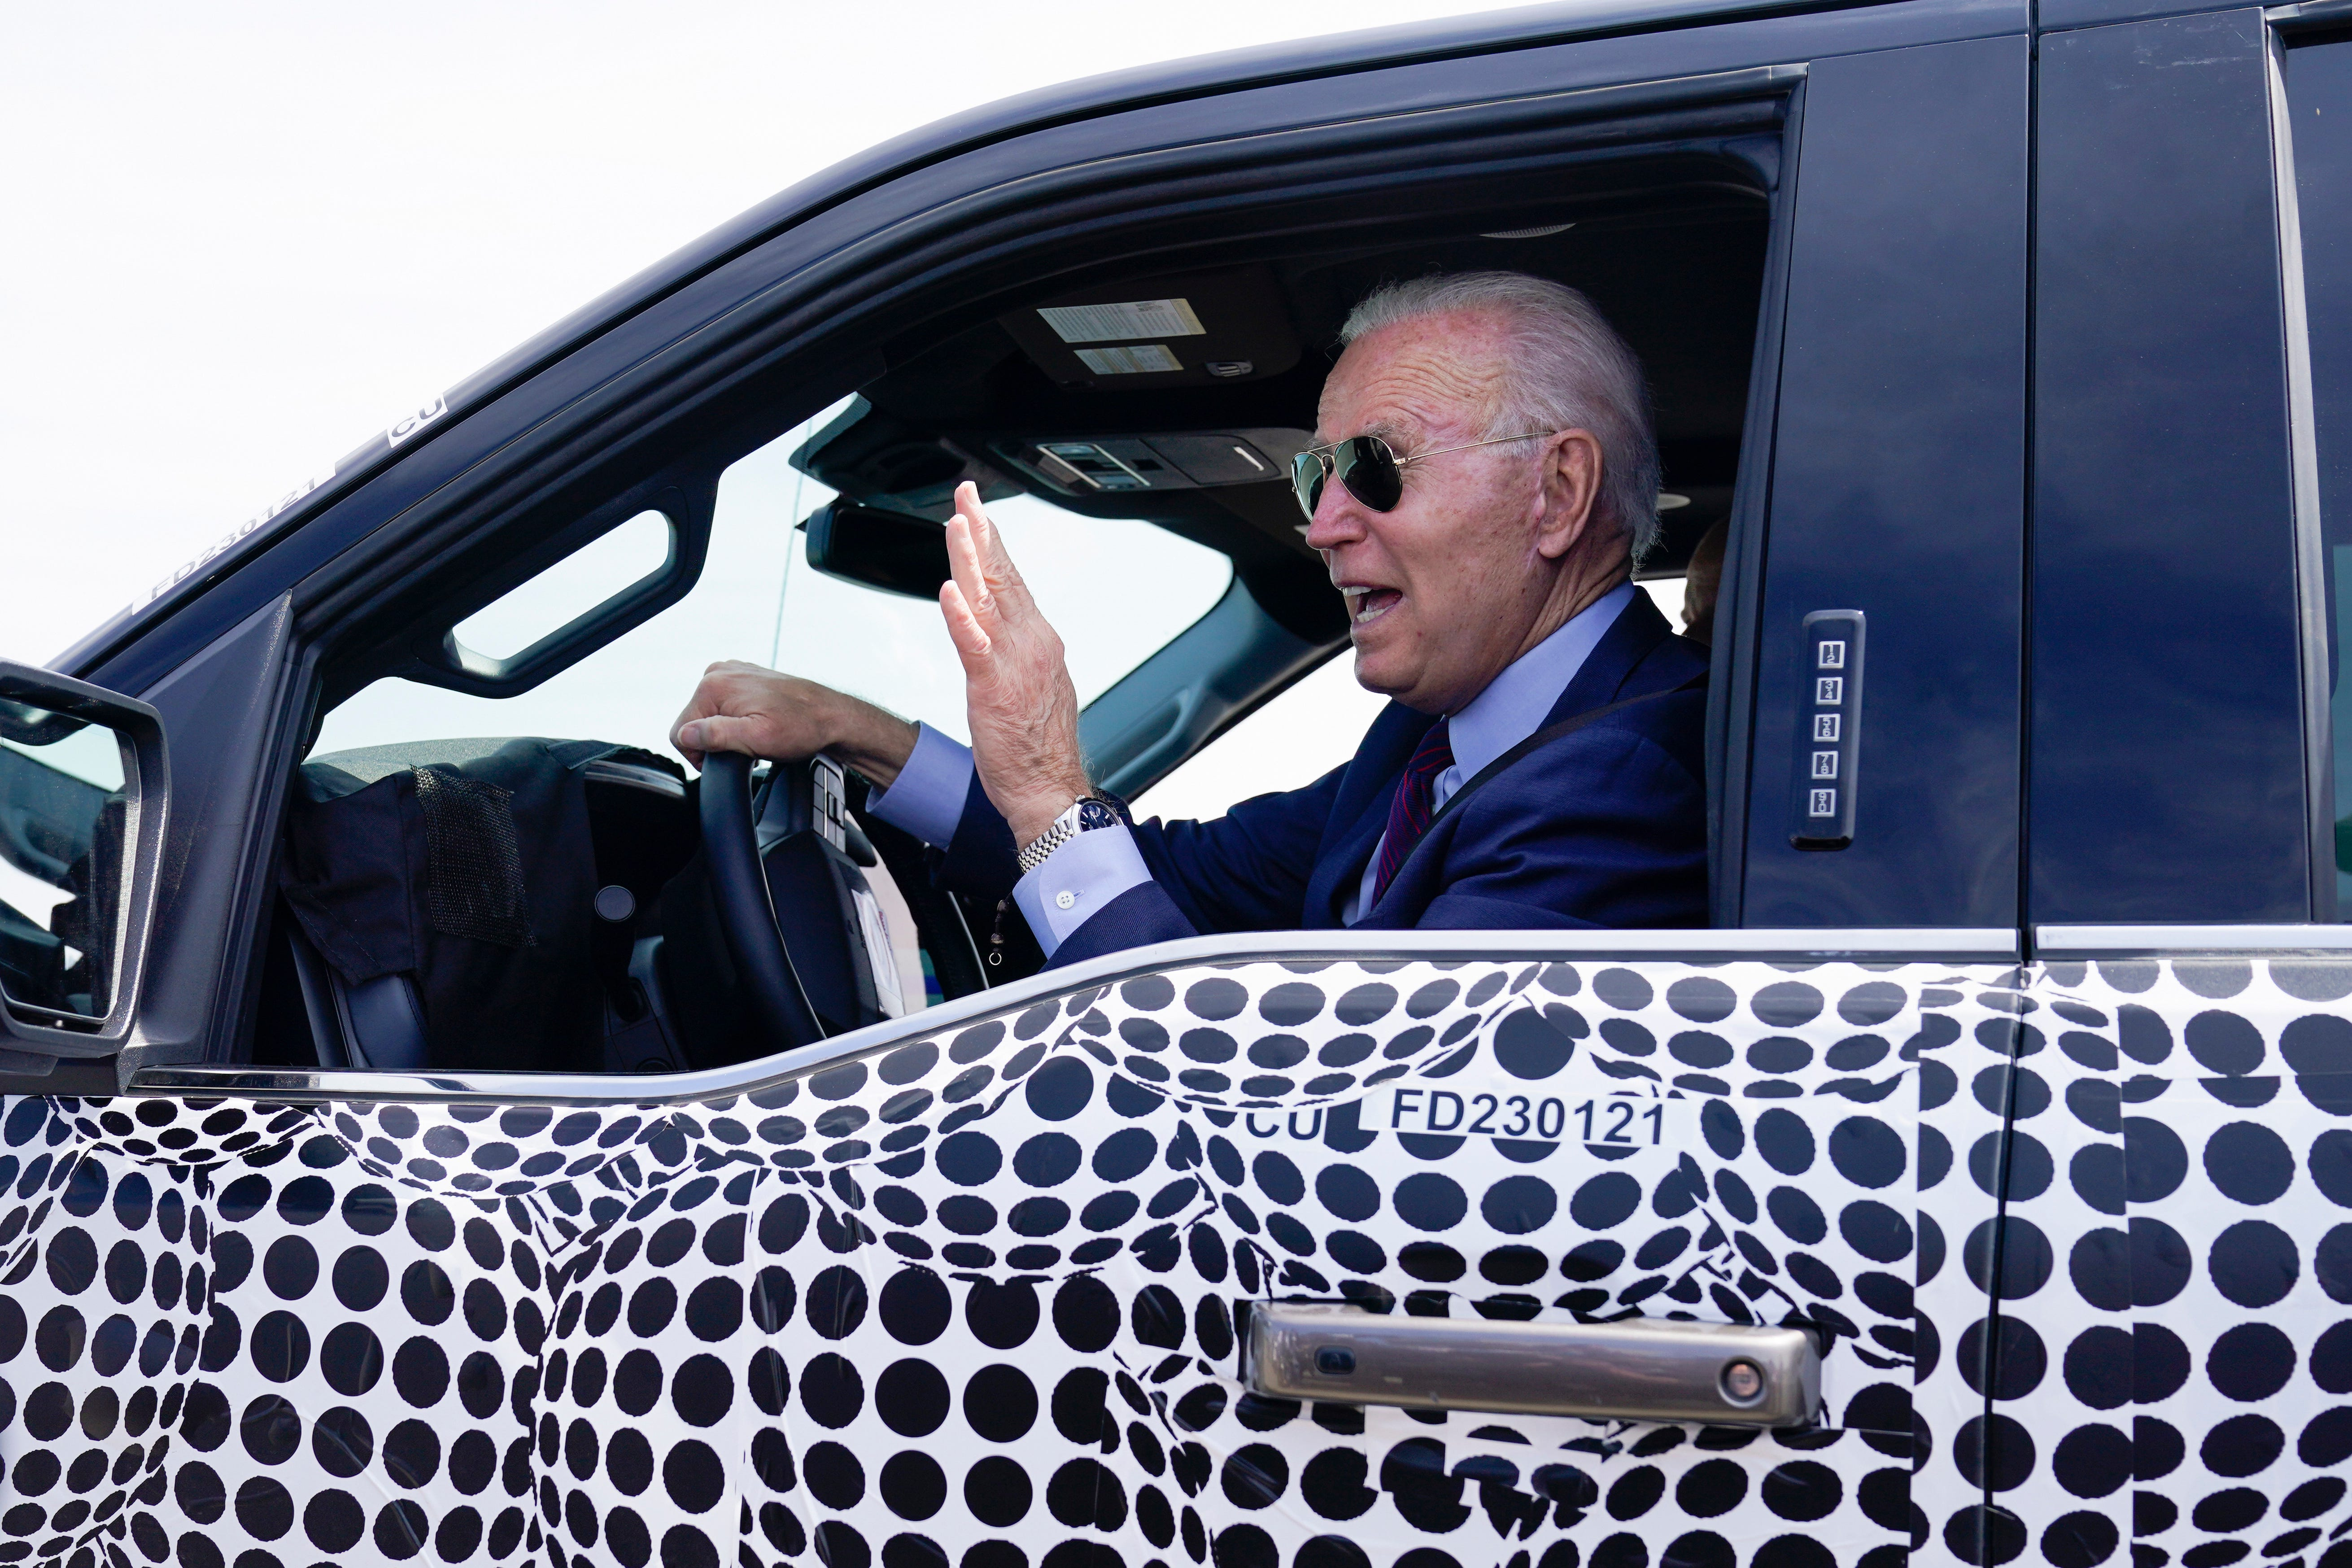 Biden jokes about running over reporter asking about Israel 2